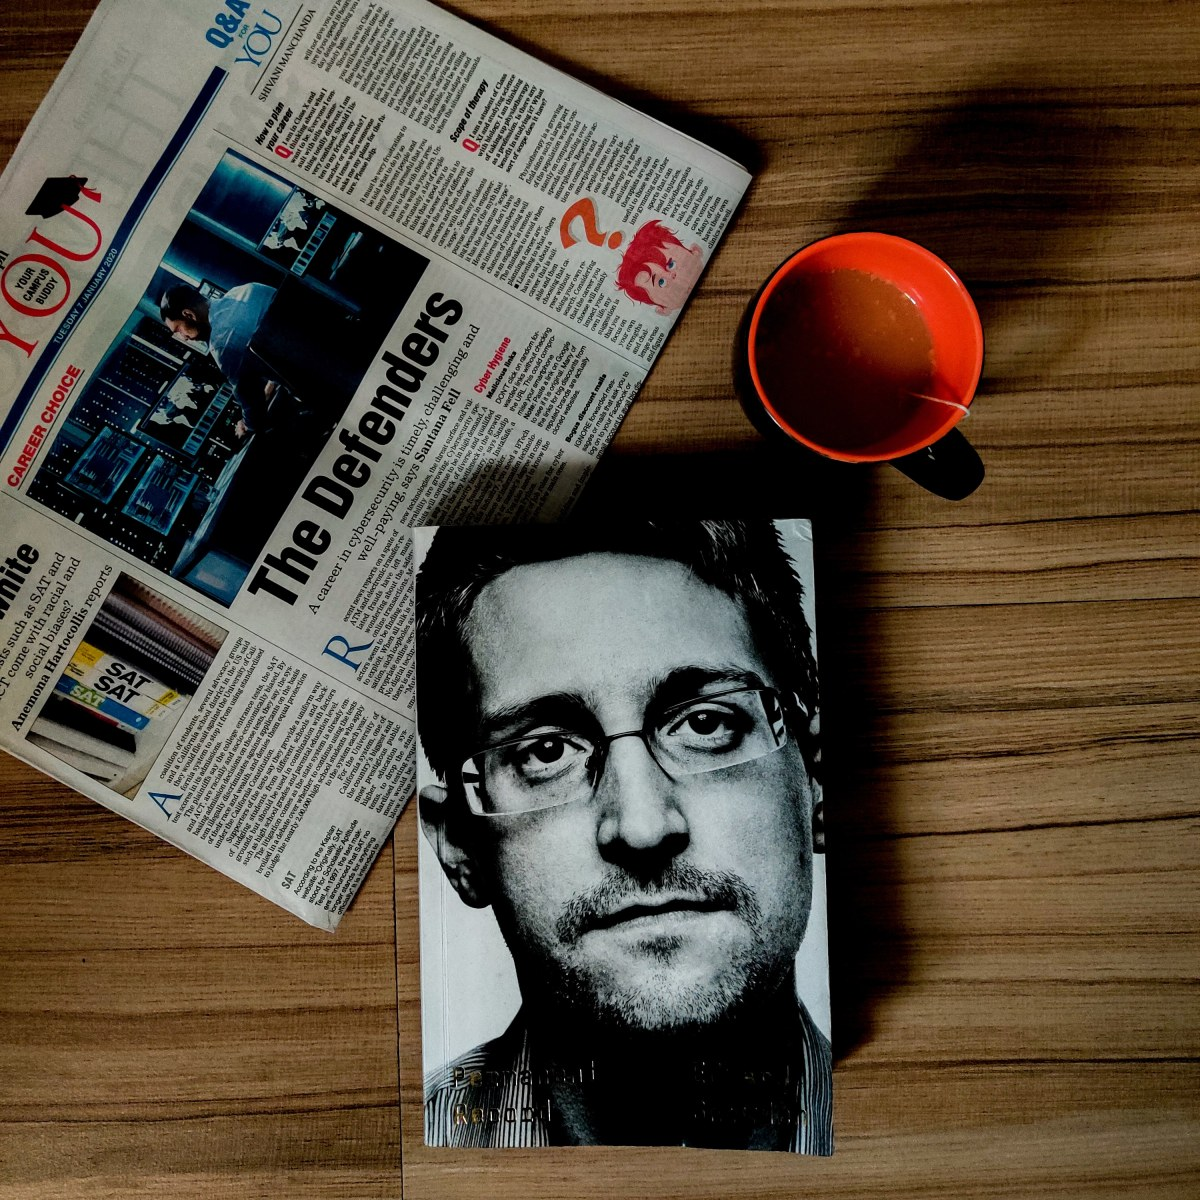 Permanent Record by Edward Snowden: The whistleblower who risked his life to reveal USA's greatest secret.